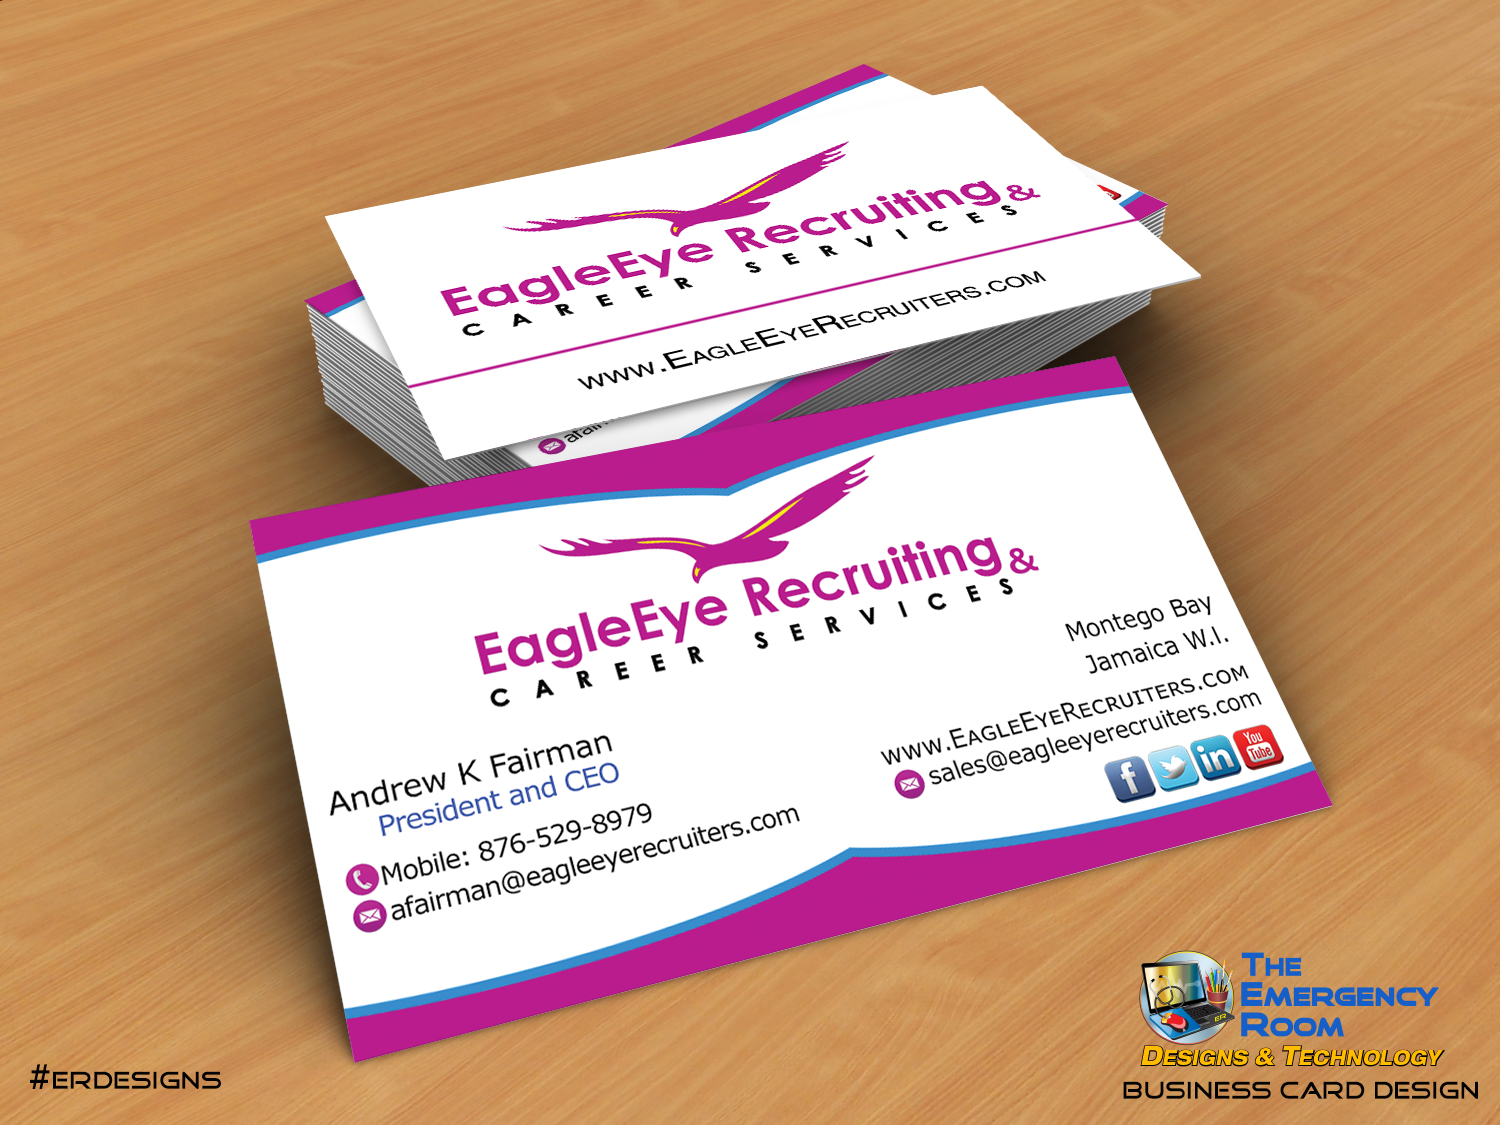 Business card design for id rather fall in chocolate erdesigns business card design for id rather fall in chocolate erdesigns designs business cards pinterest business cards magicingreecefo Gallery